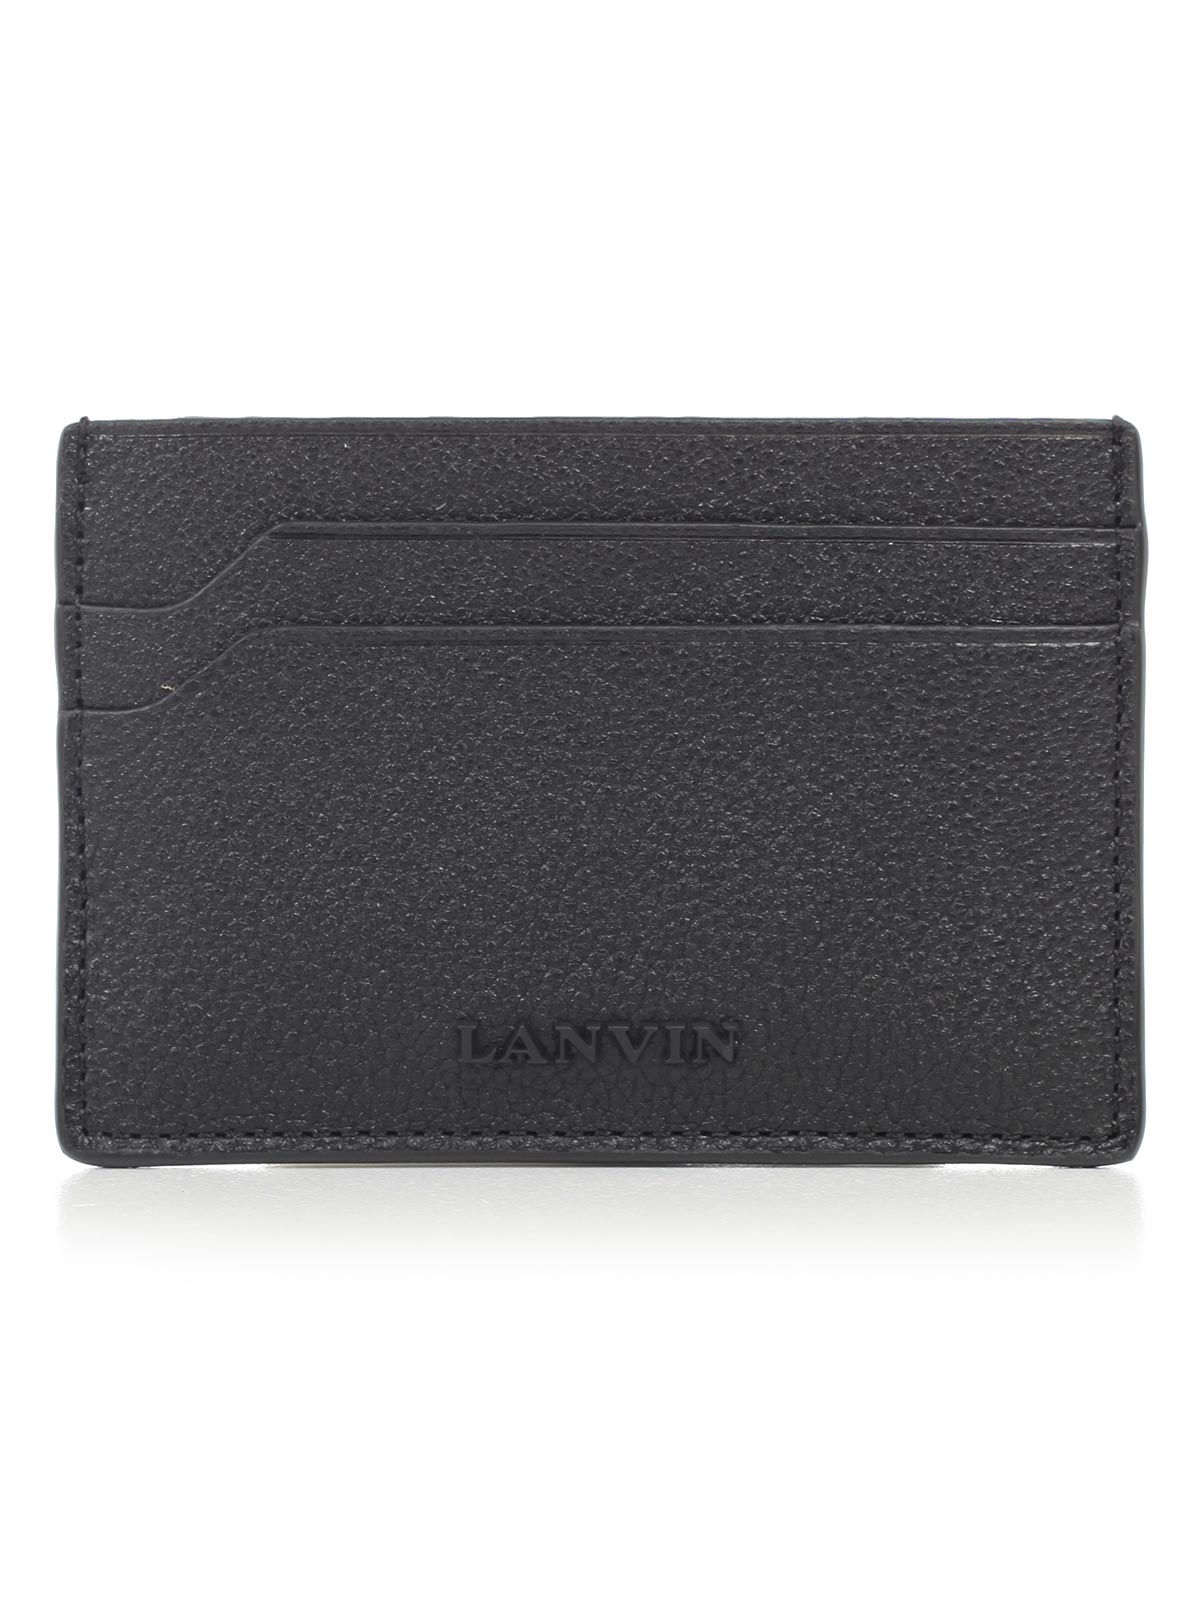 Picture of LANVIN SMALL LEATHER GOODS